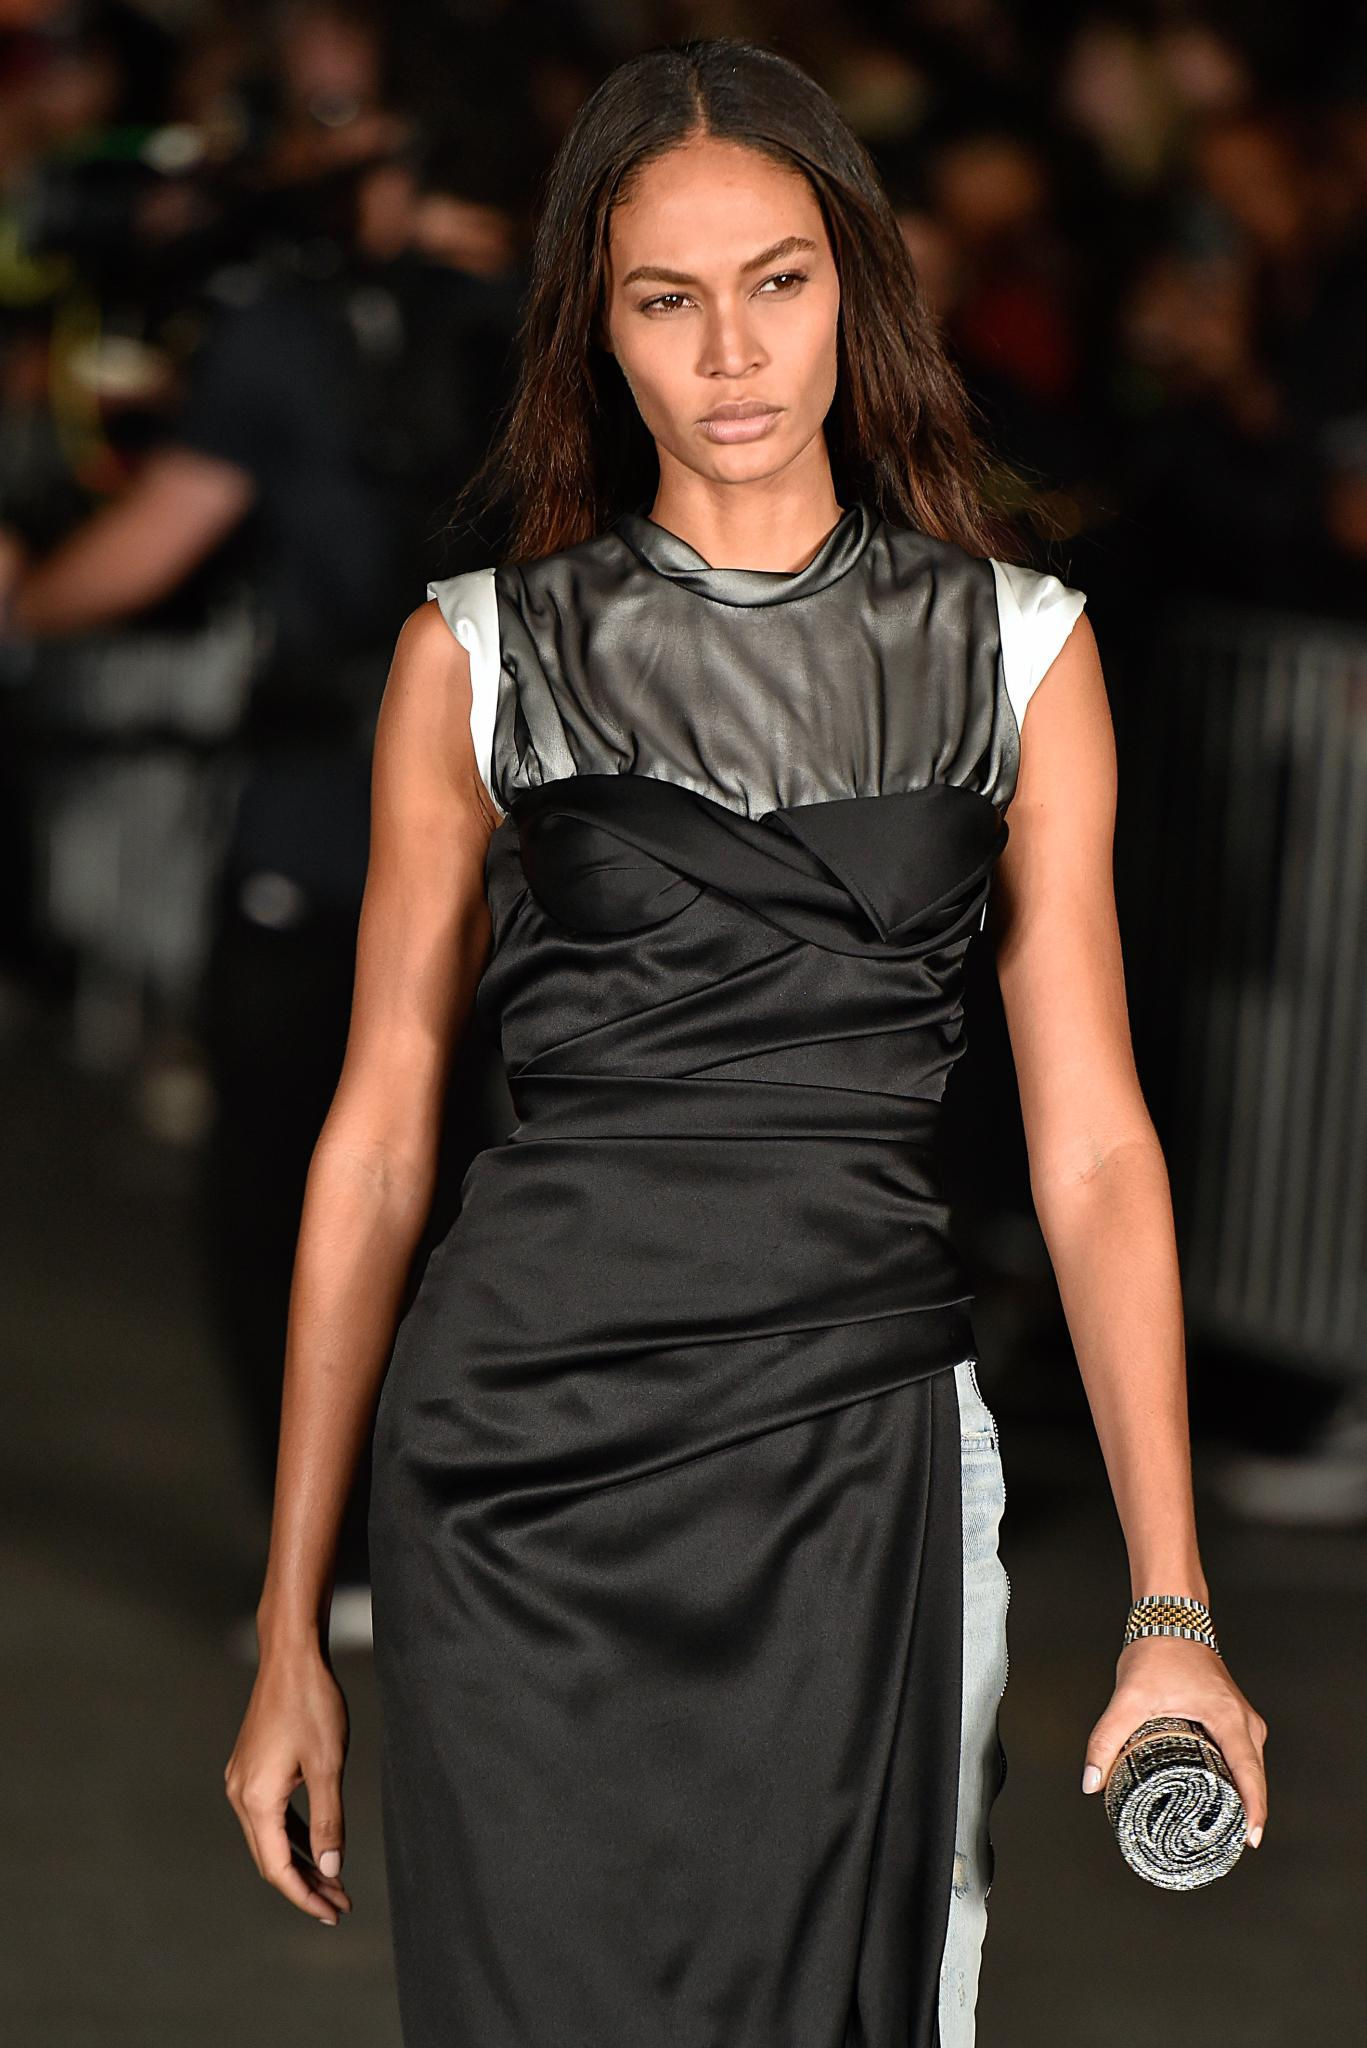 Joan Smalls on the runway with straight black hair